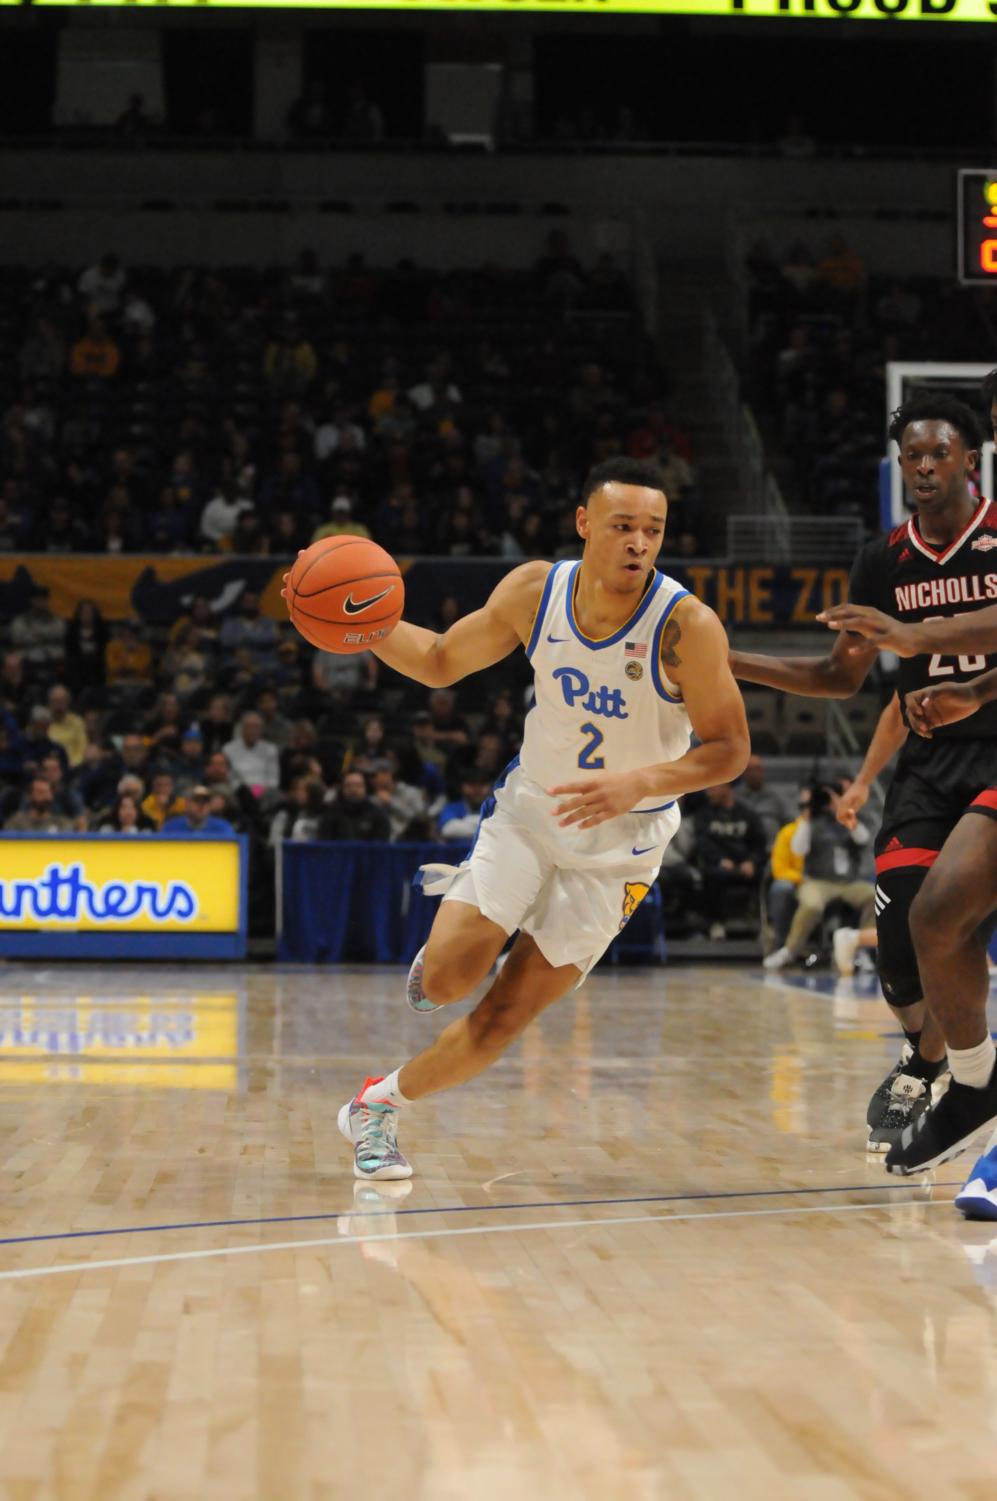 The Panthers lost their first game of the season to Nicholls State 75-70 Saturday.